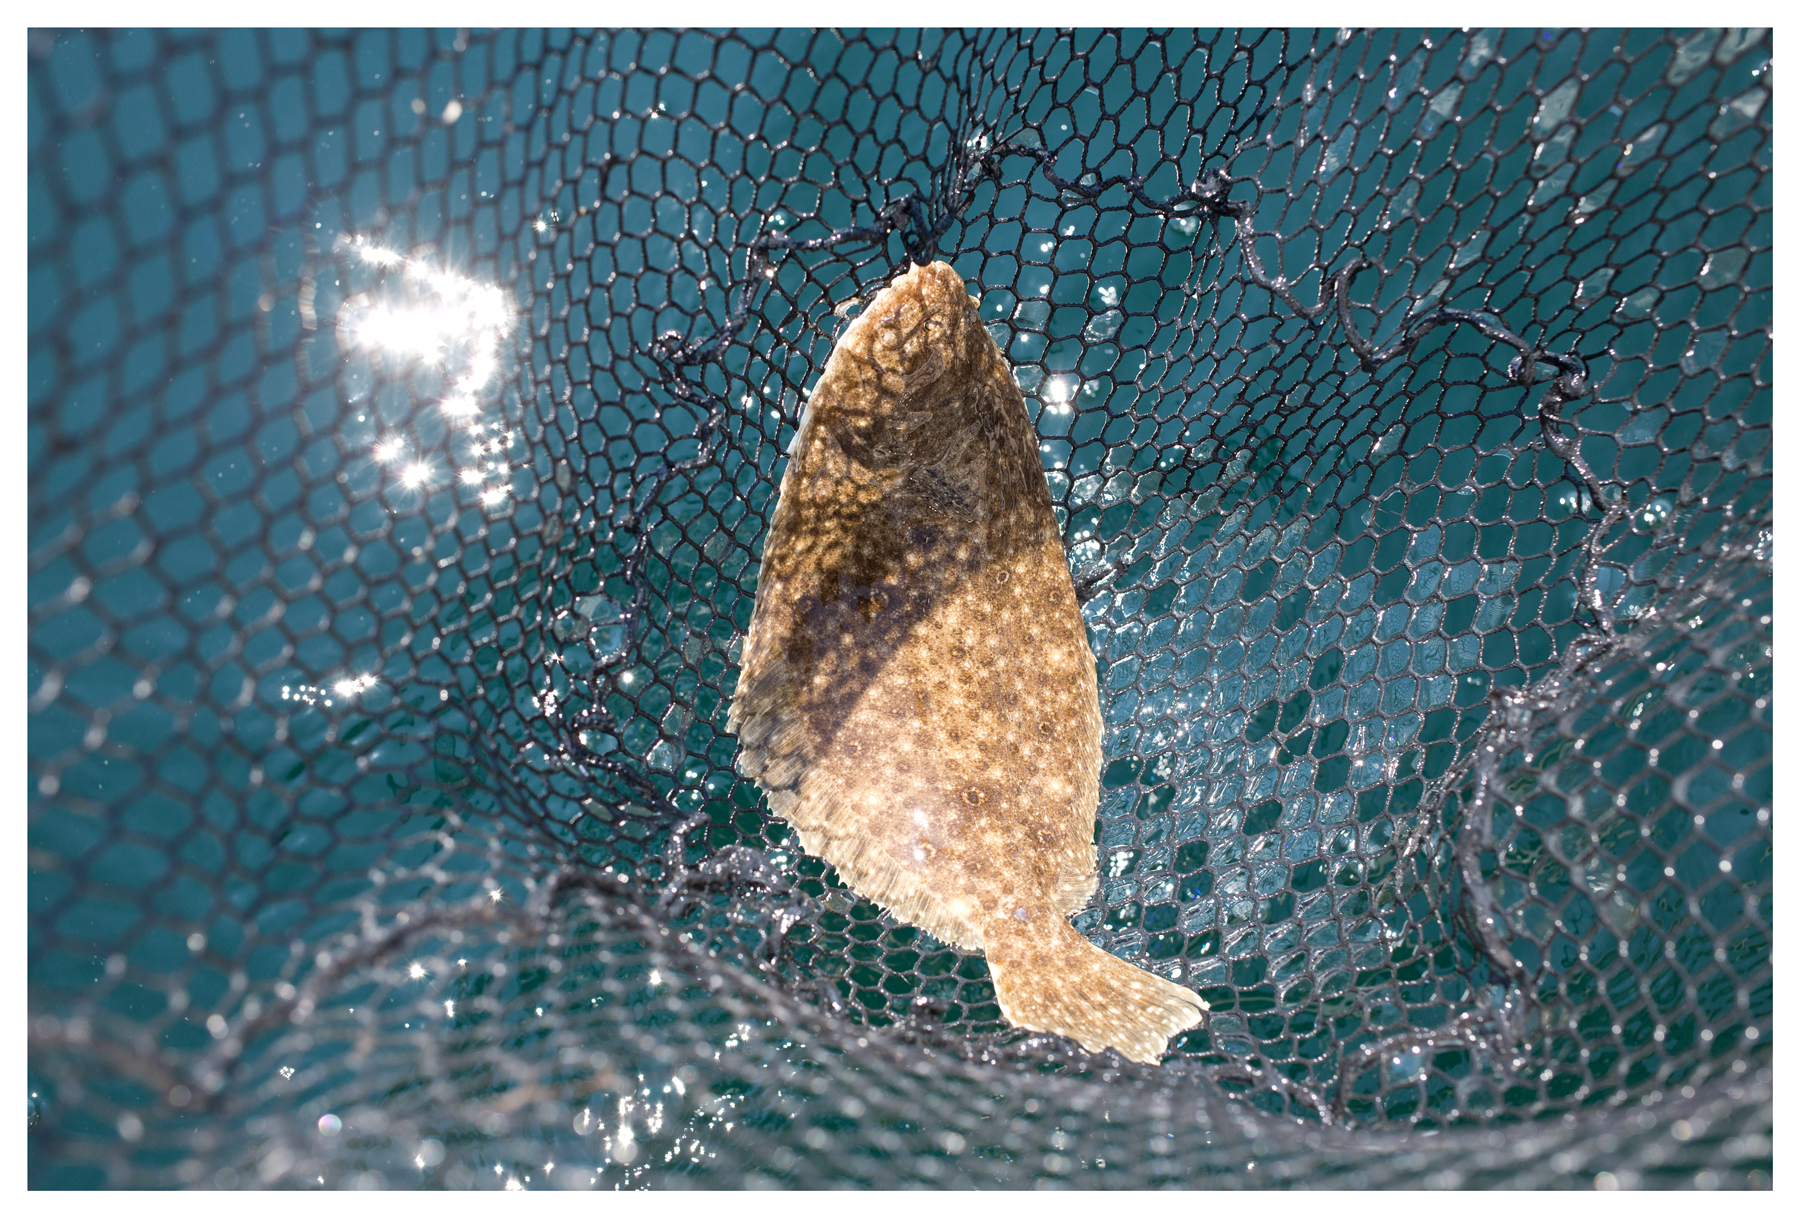 Netted summer flounder; Atlantic Ocean, off Virginia; August 2014